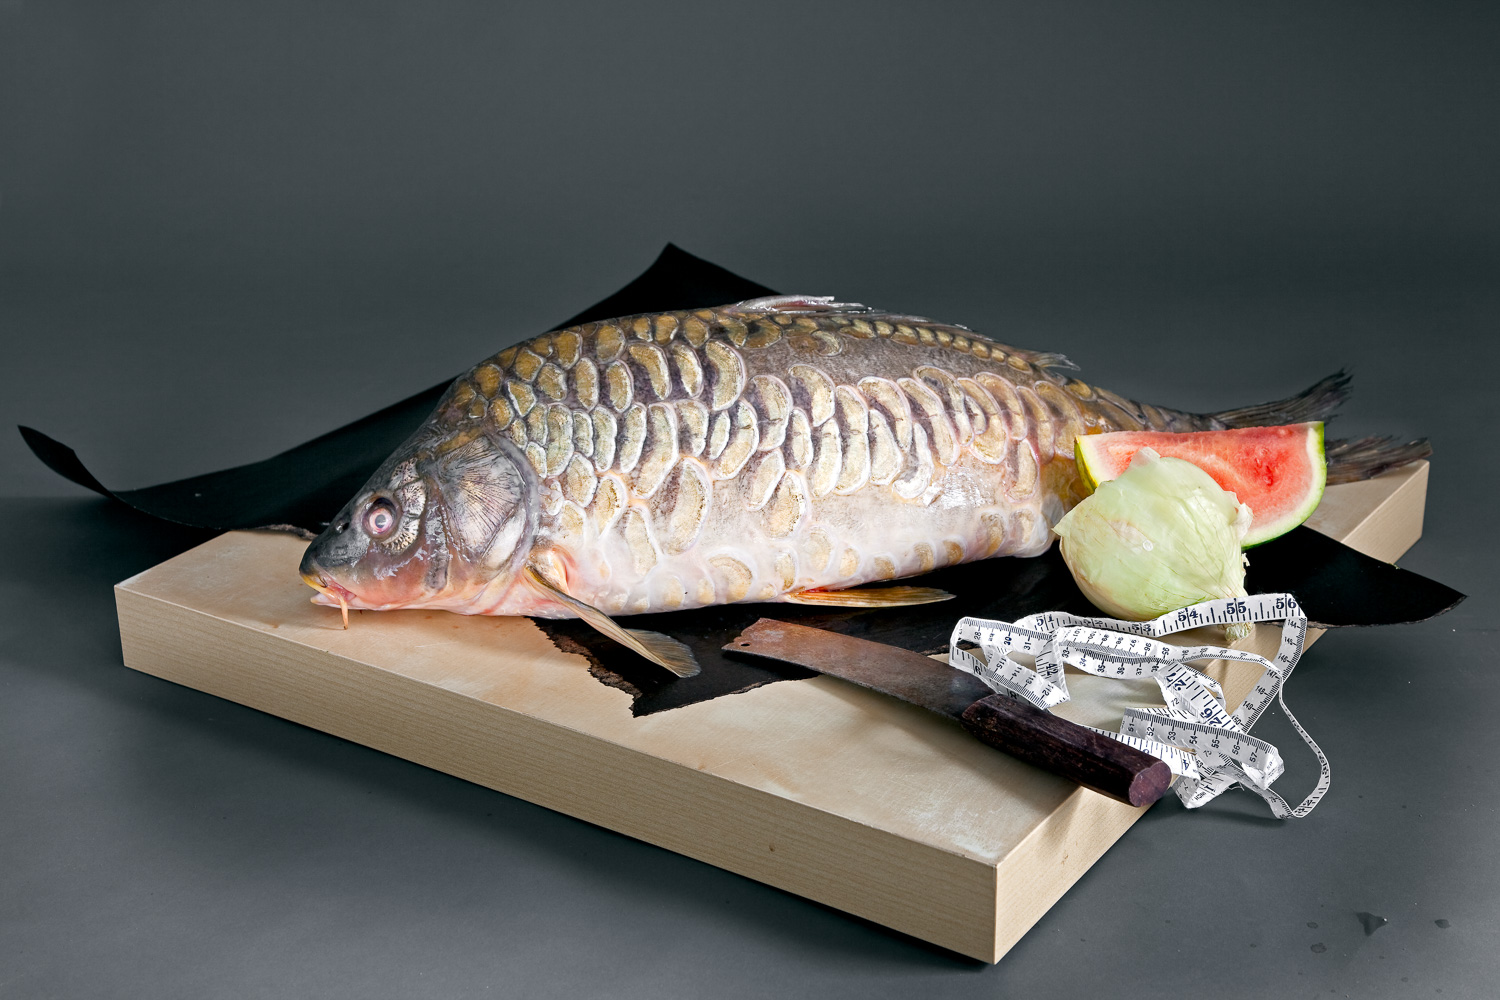 There are more Carp raised for food than any other fish and no two look alike.